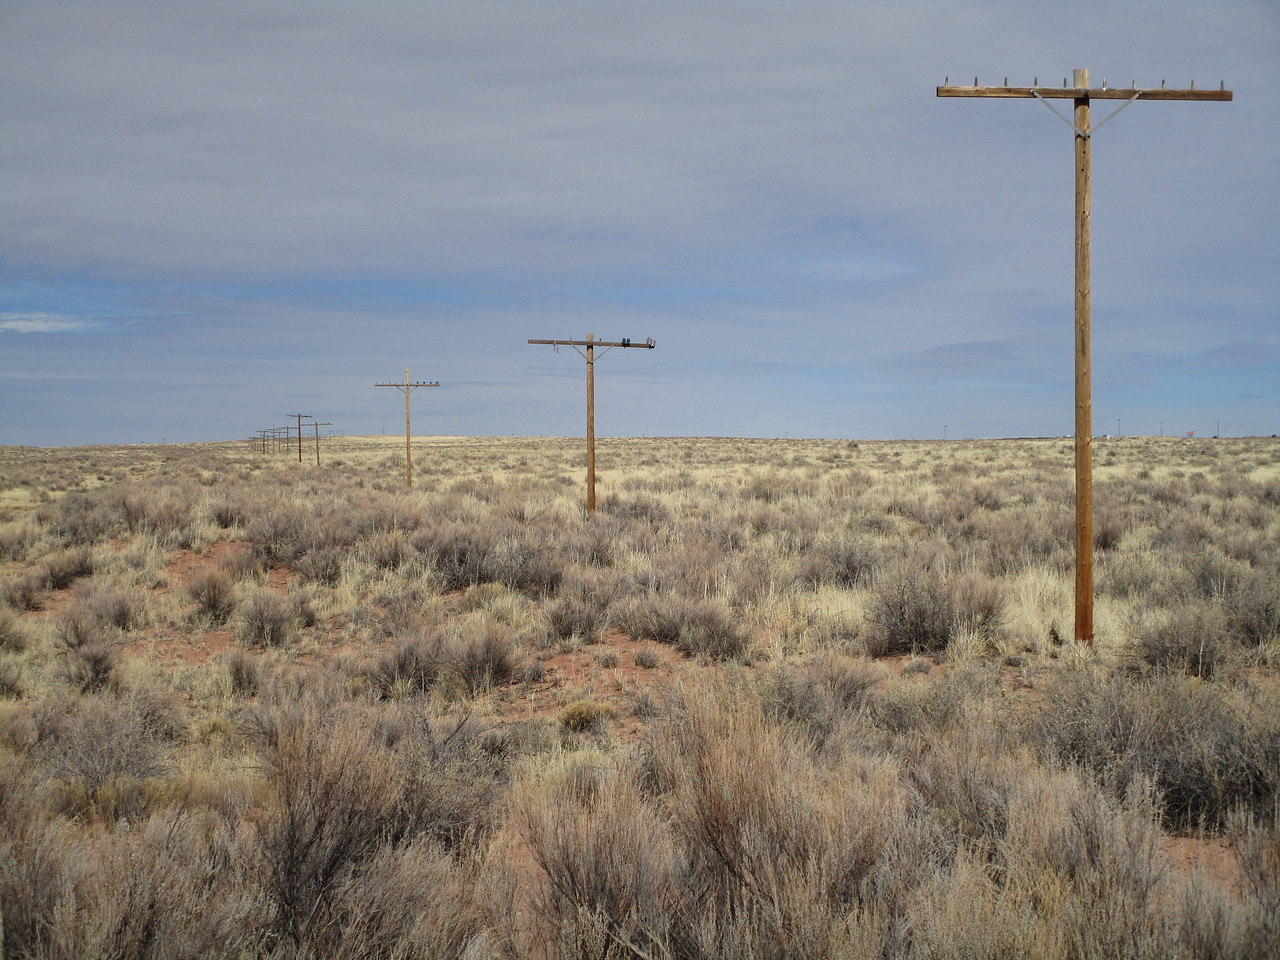 These old phone poles actually mark the former Route 66 in the PFNP.  Kind of a boring photo, but the history is cool.  Picture station wagons loaded with families, pre-interstate, heading west to explore America.